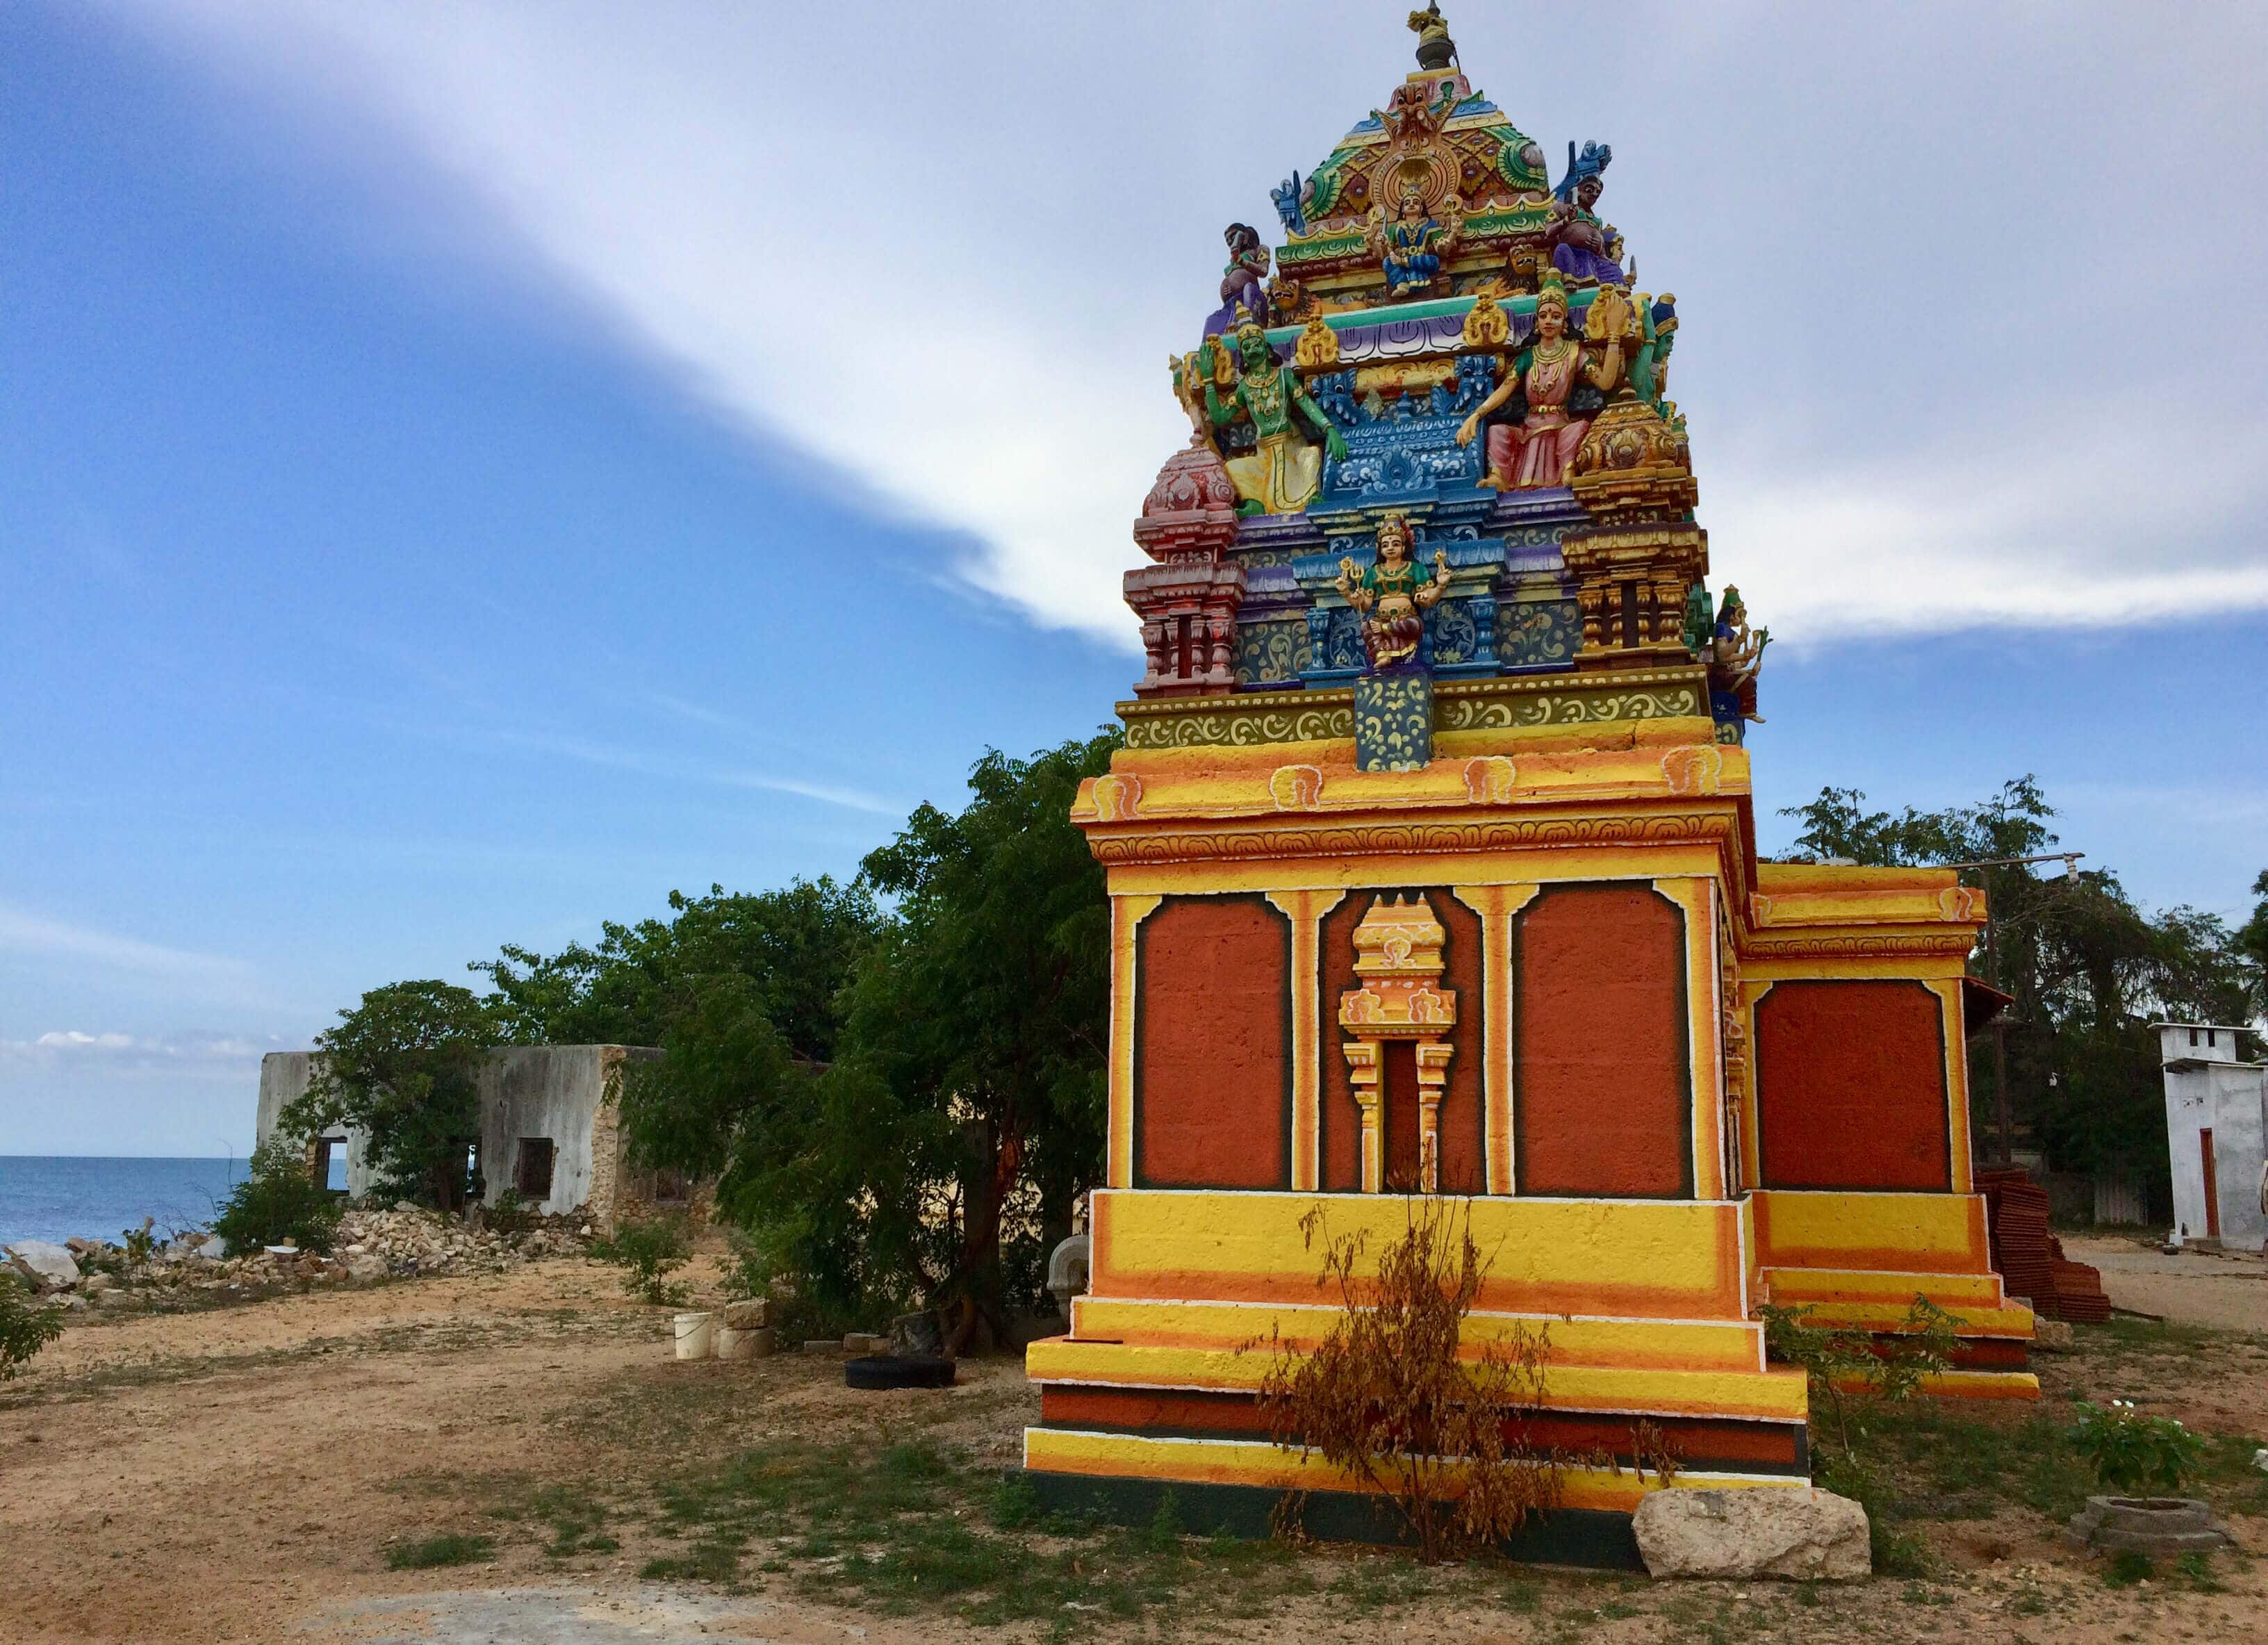 Jaffna, Sri Lanka - One of the most underrated cities in the world + why you should add it to your bucket list low!